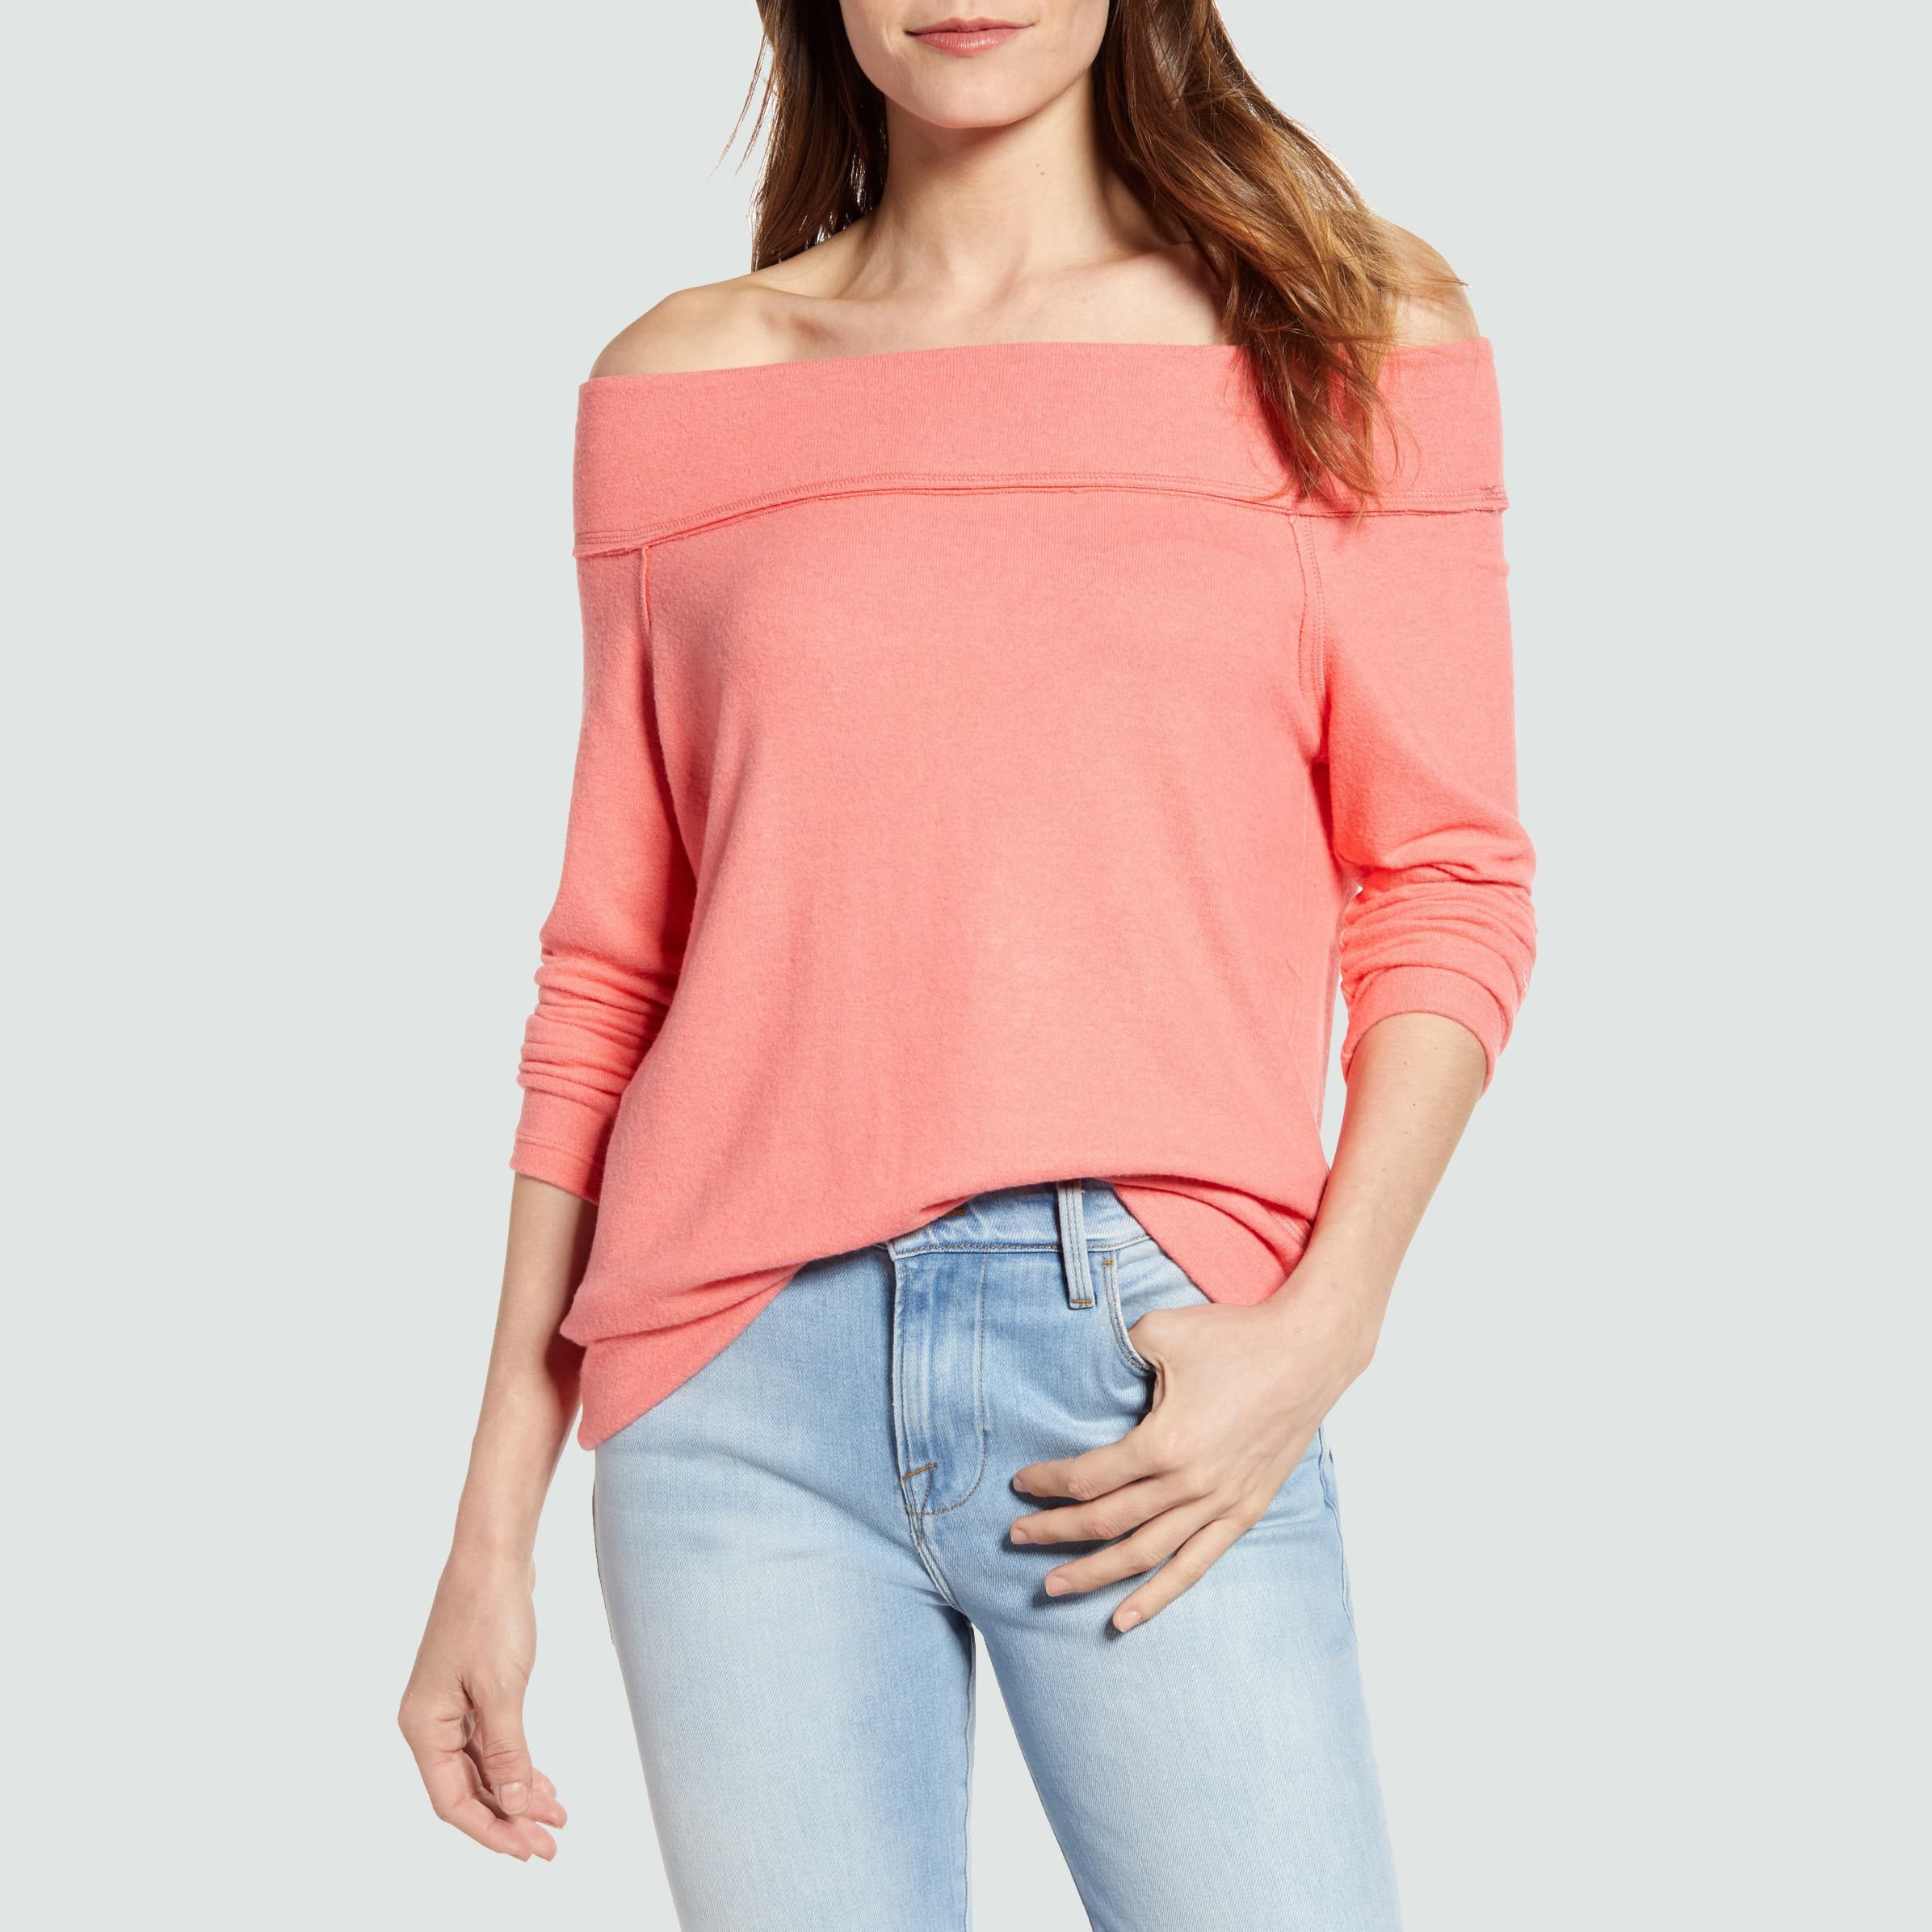 blouse work from home video call